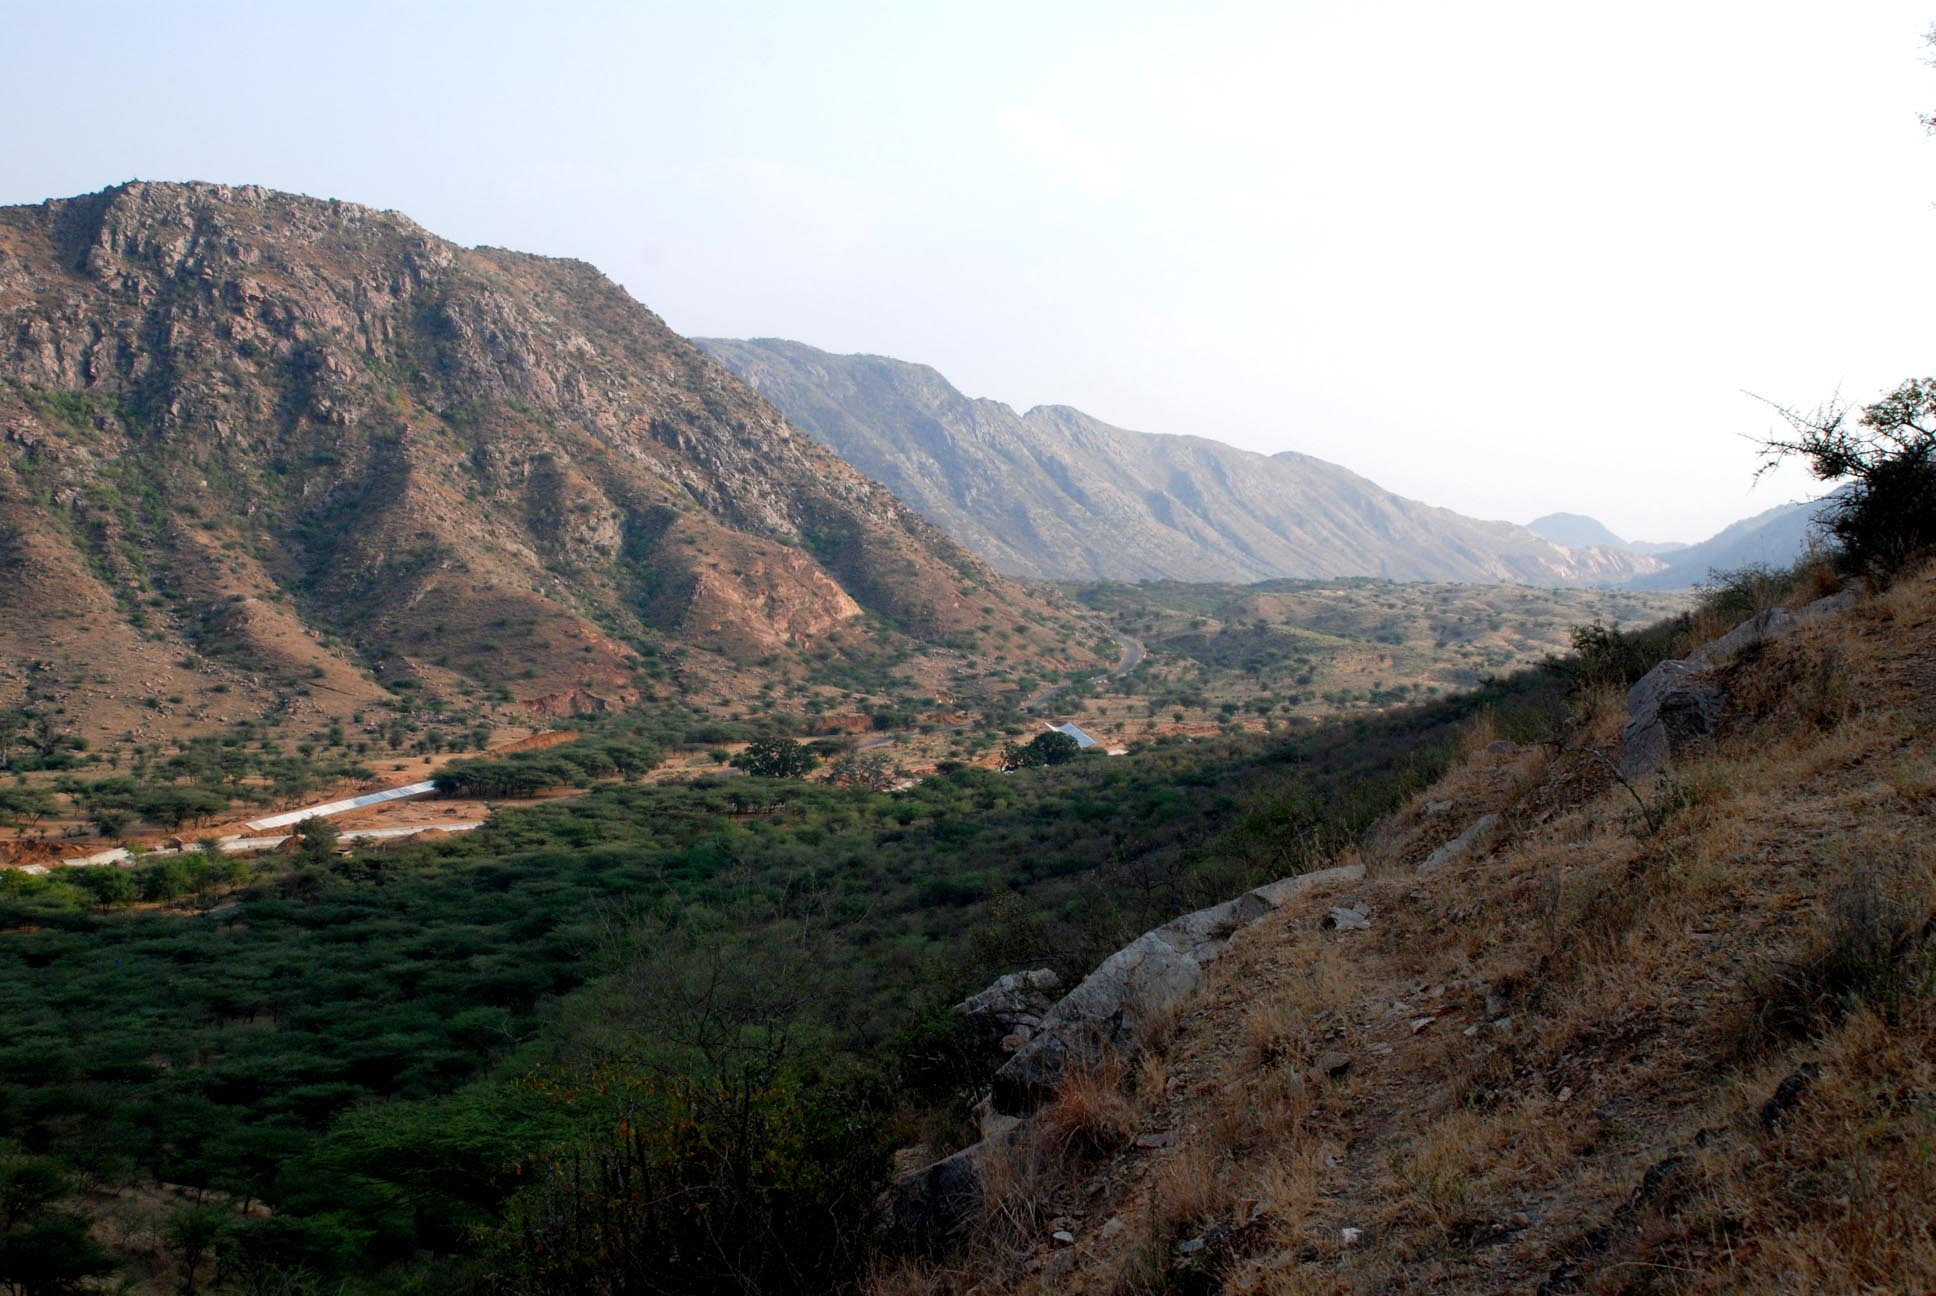 The valley...the road from Ajmer passes through it to reach Pushkar